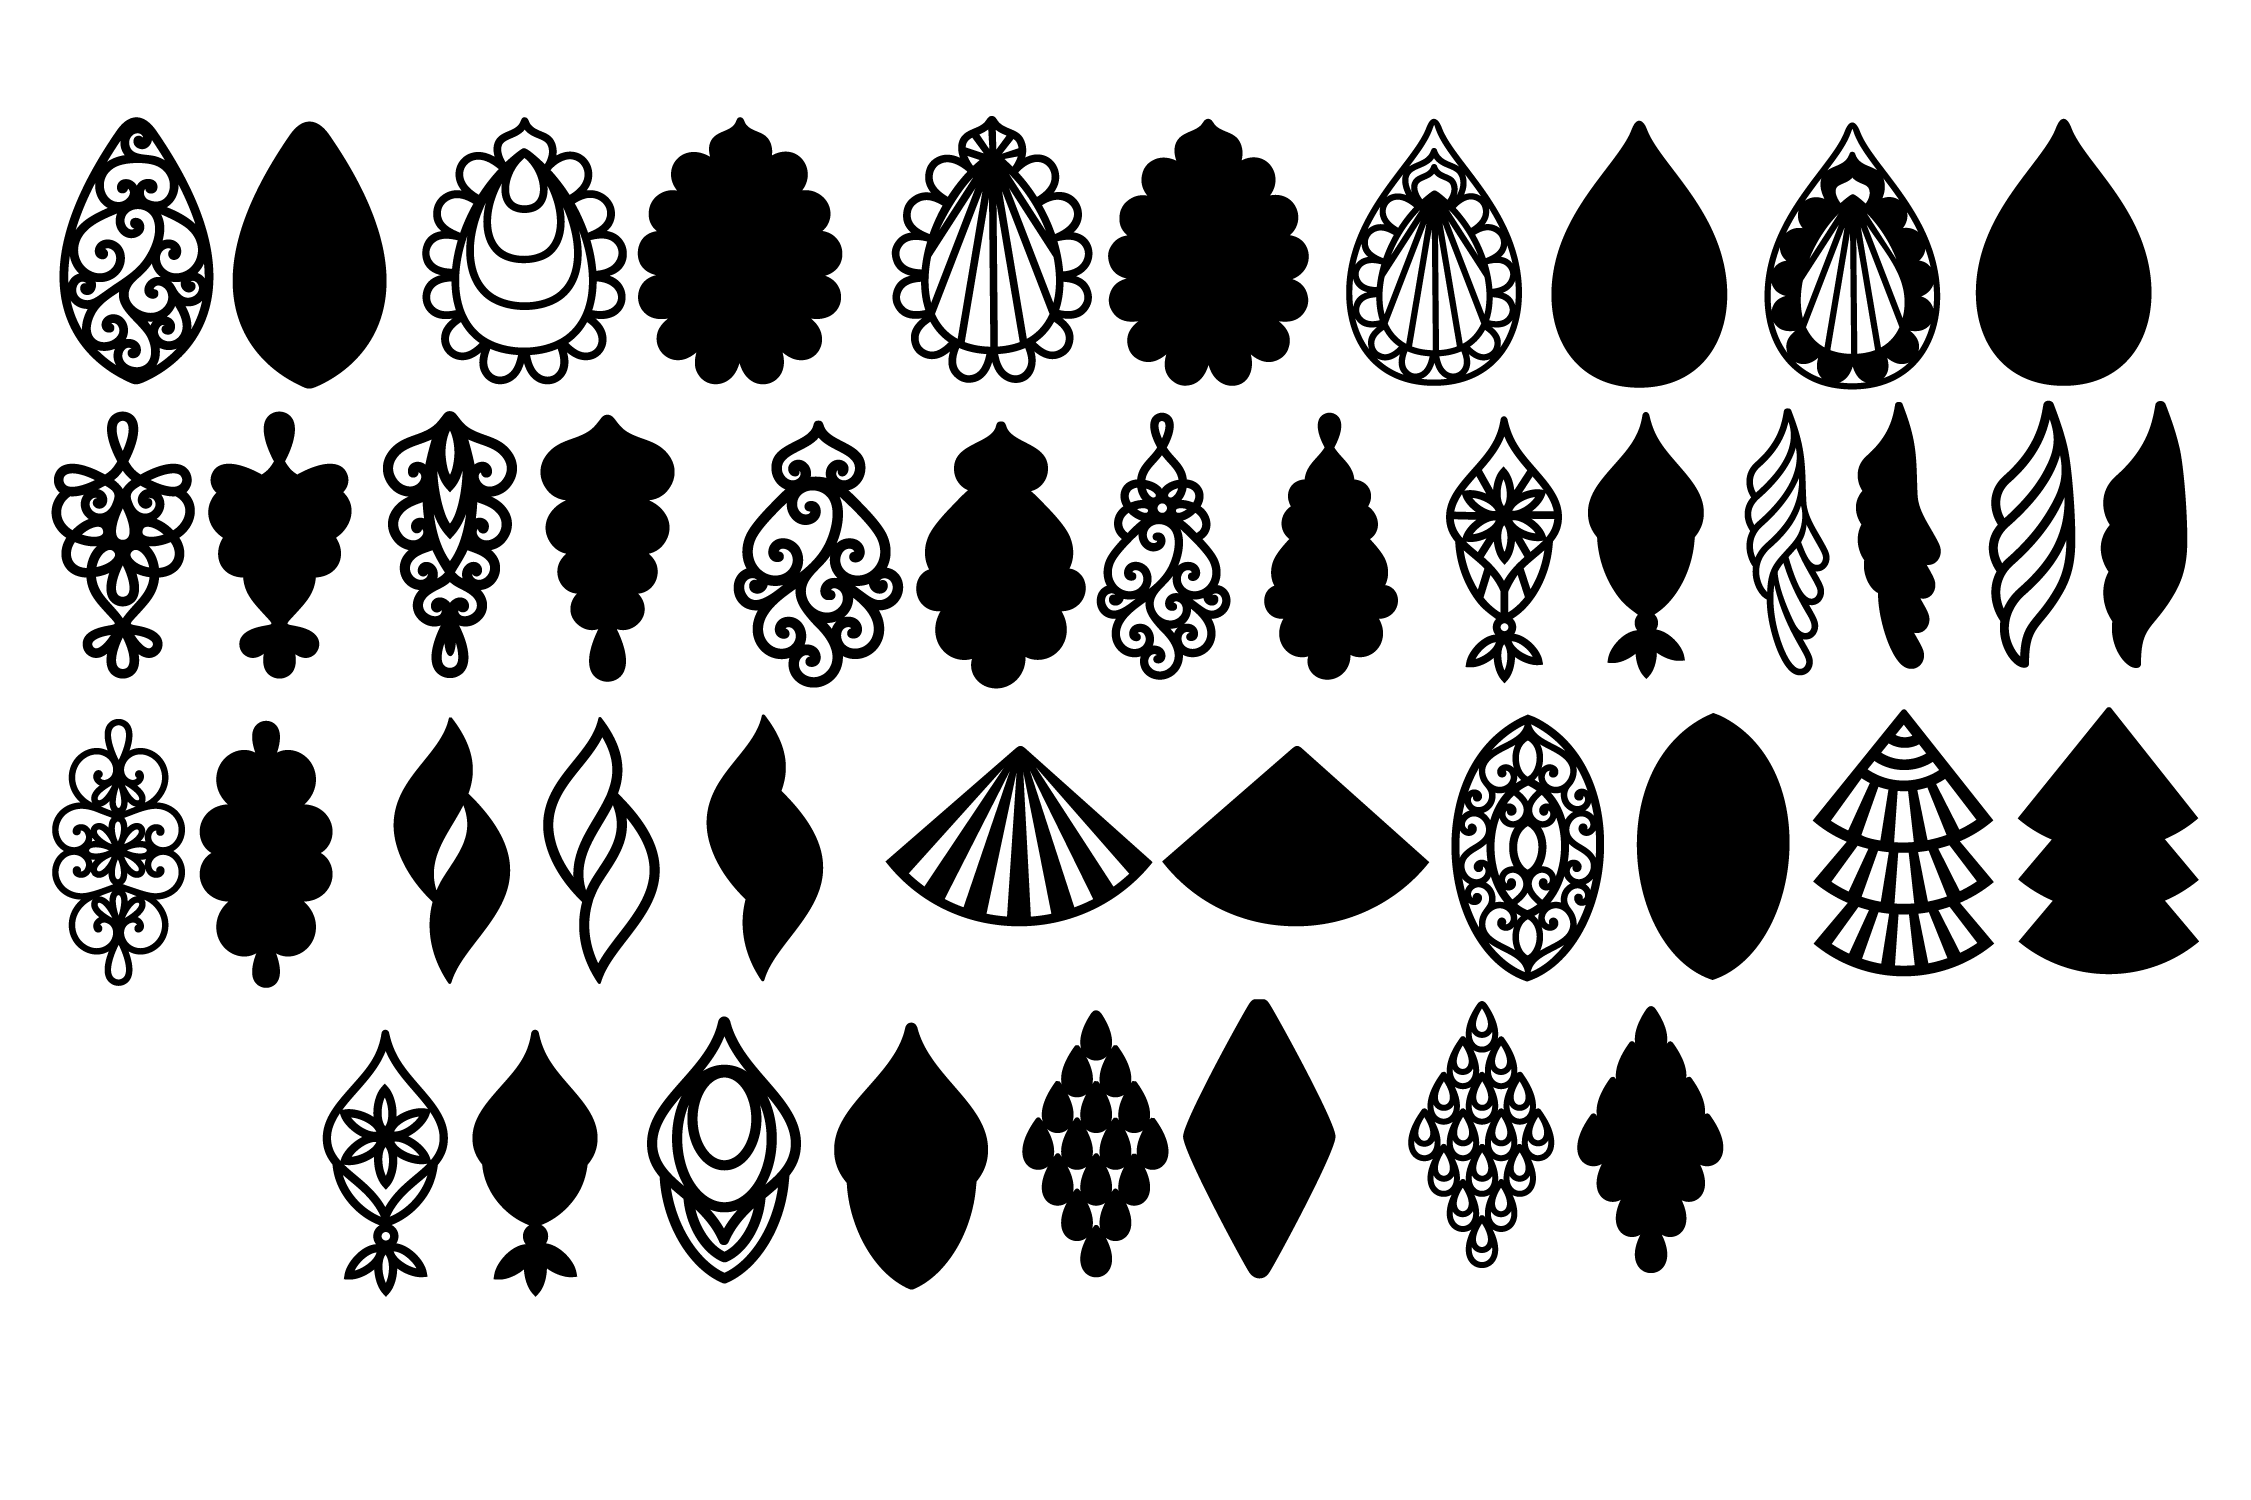 Download Free Teardrop Earrings Template Graphic By Yulnniya Creative Fabrica for Cricut Explore, Silhouette and other cutting machines.